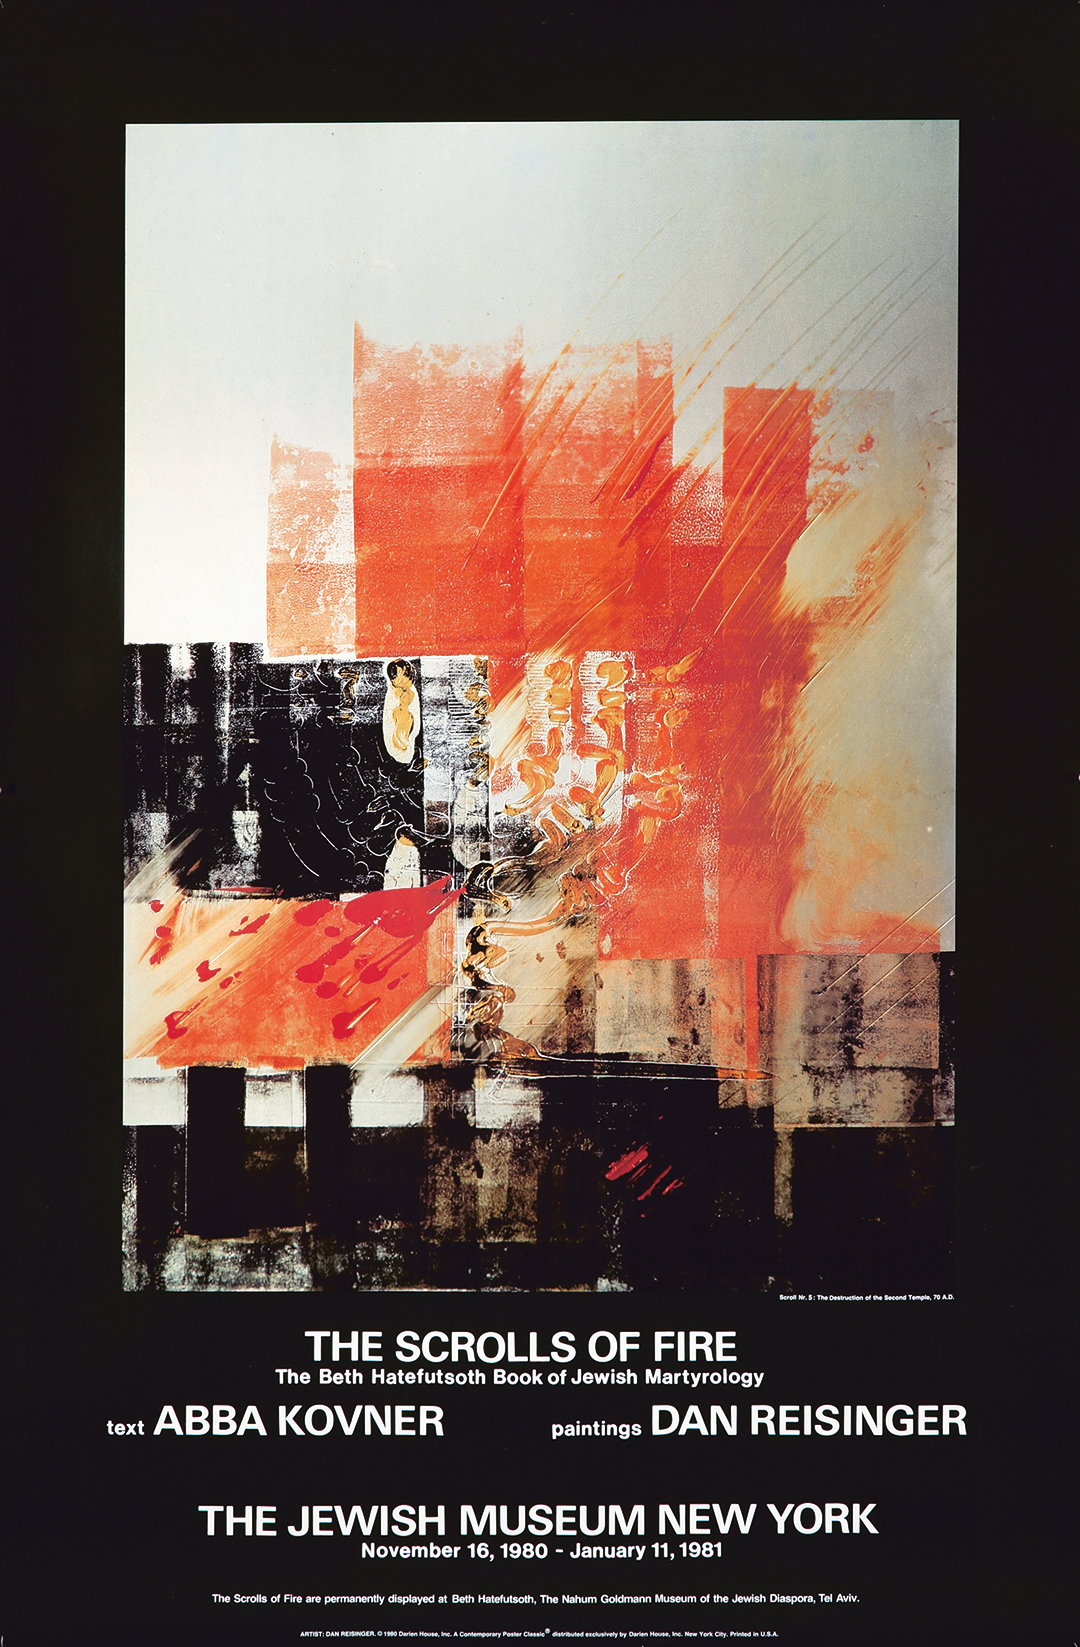 The Scrolls of Fire. 1980.